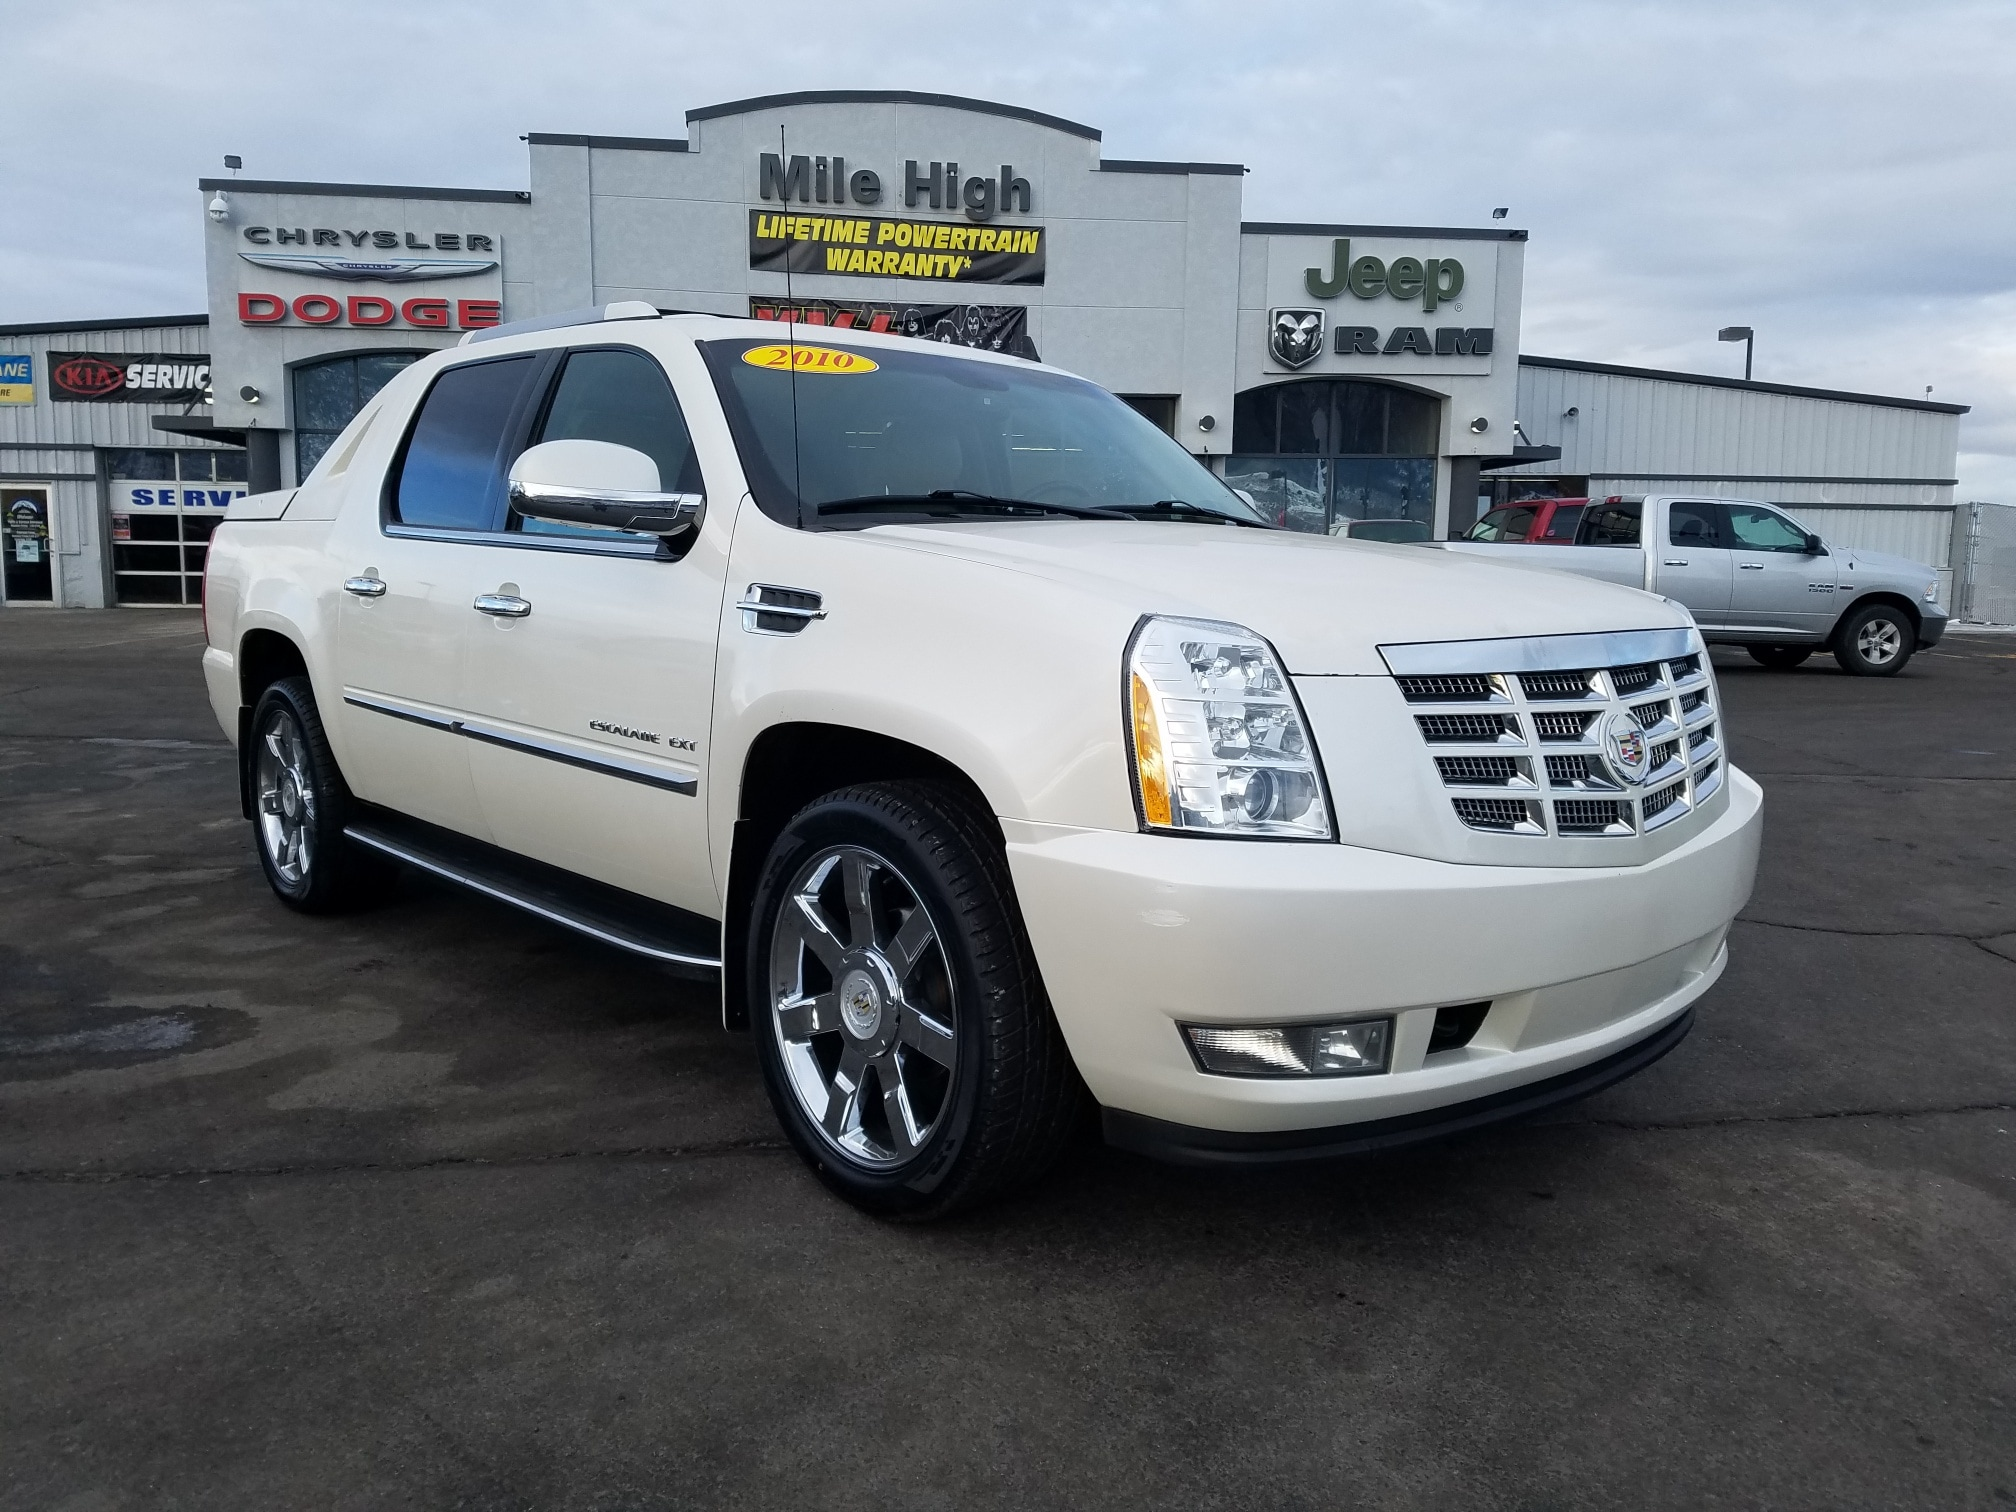 2010 CADILLAC ESCALADE EXT AWD 4dr Luxury SUV